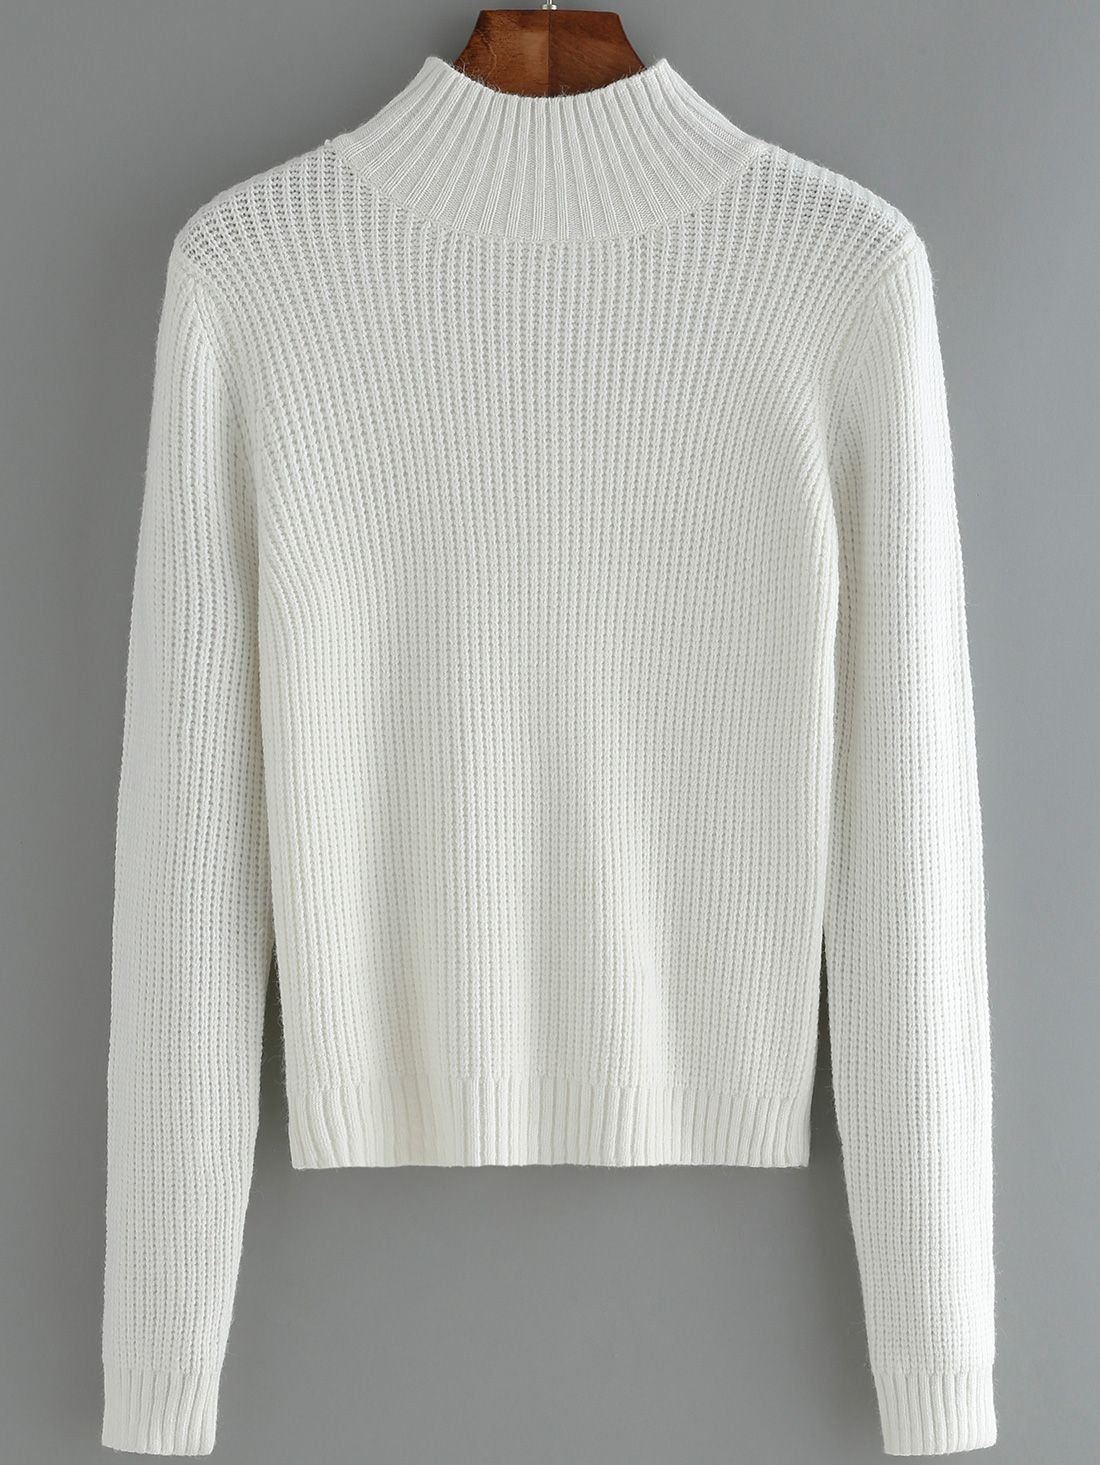 Women Mock Neck Slim White Sweater 18.00 | Fashion pics ...